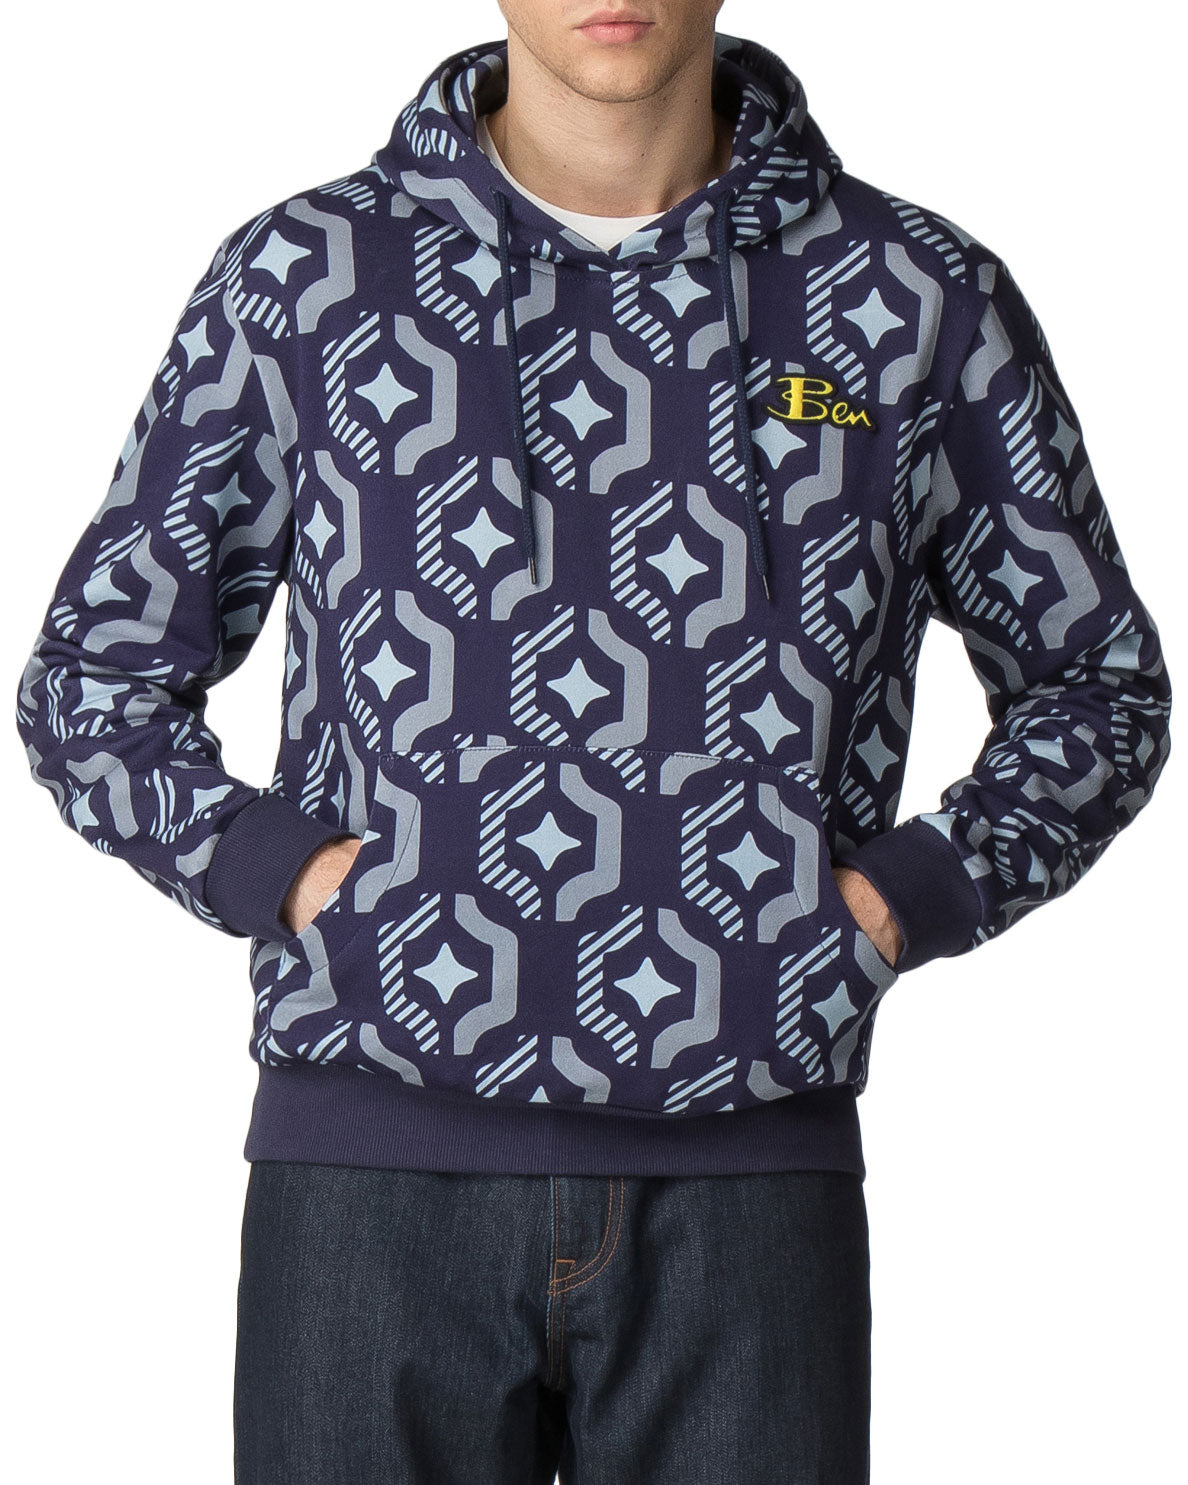 Ben Sherman x House of Holland Geo Wallpaper Printed Hoodie Jacket